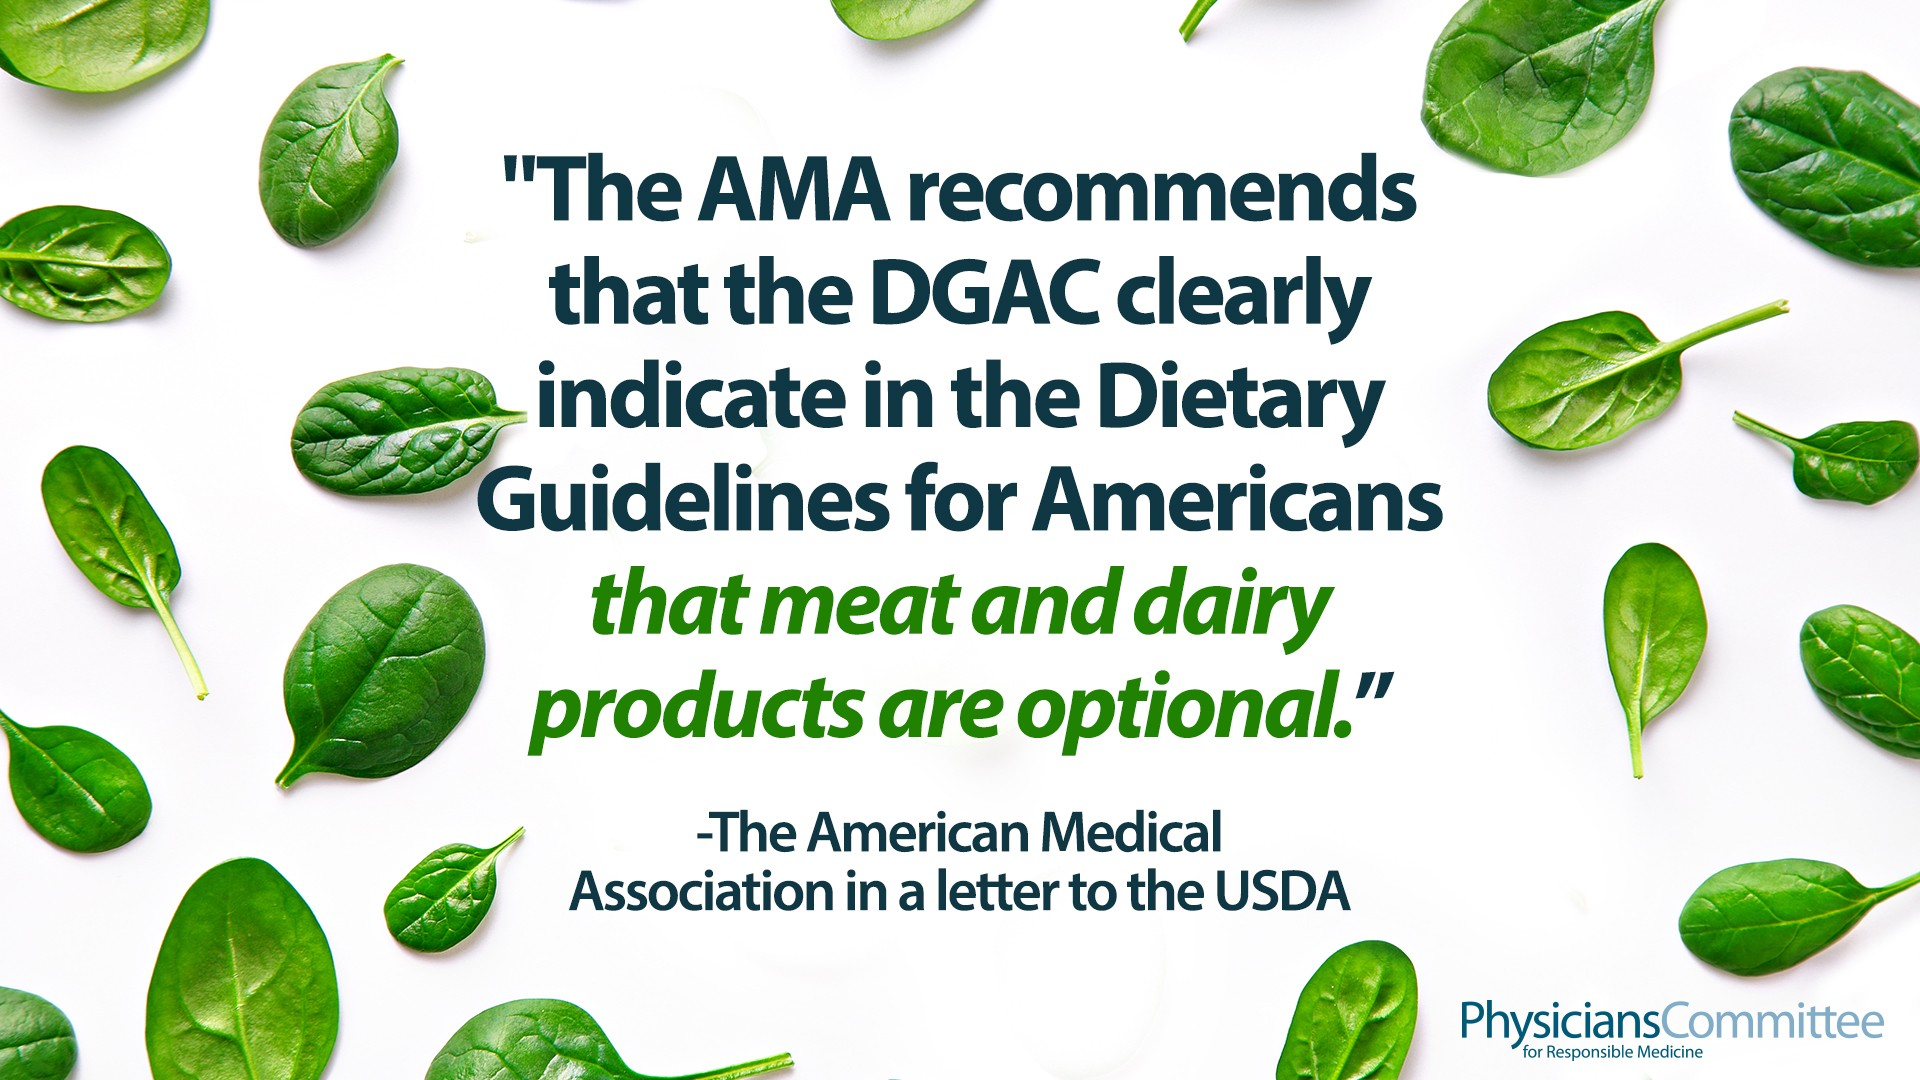 American Medical Association Calls for Dietary Guidelines to Indicate 'Meat and Dairy Products Are Optional' To Fight Health Disparities